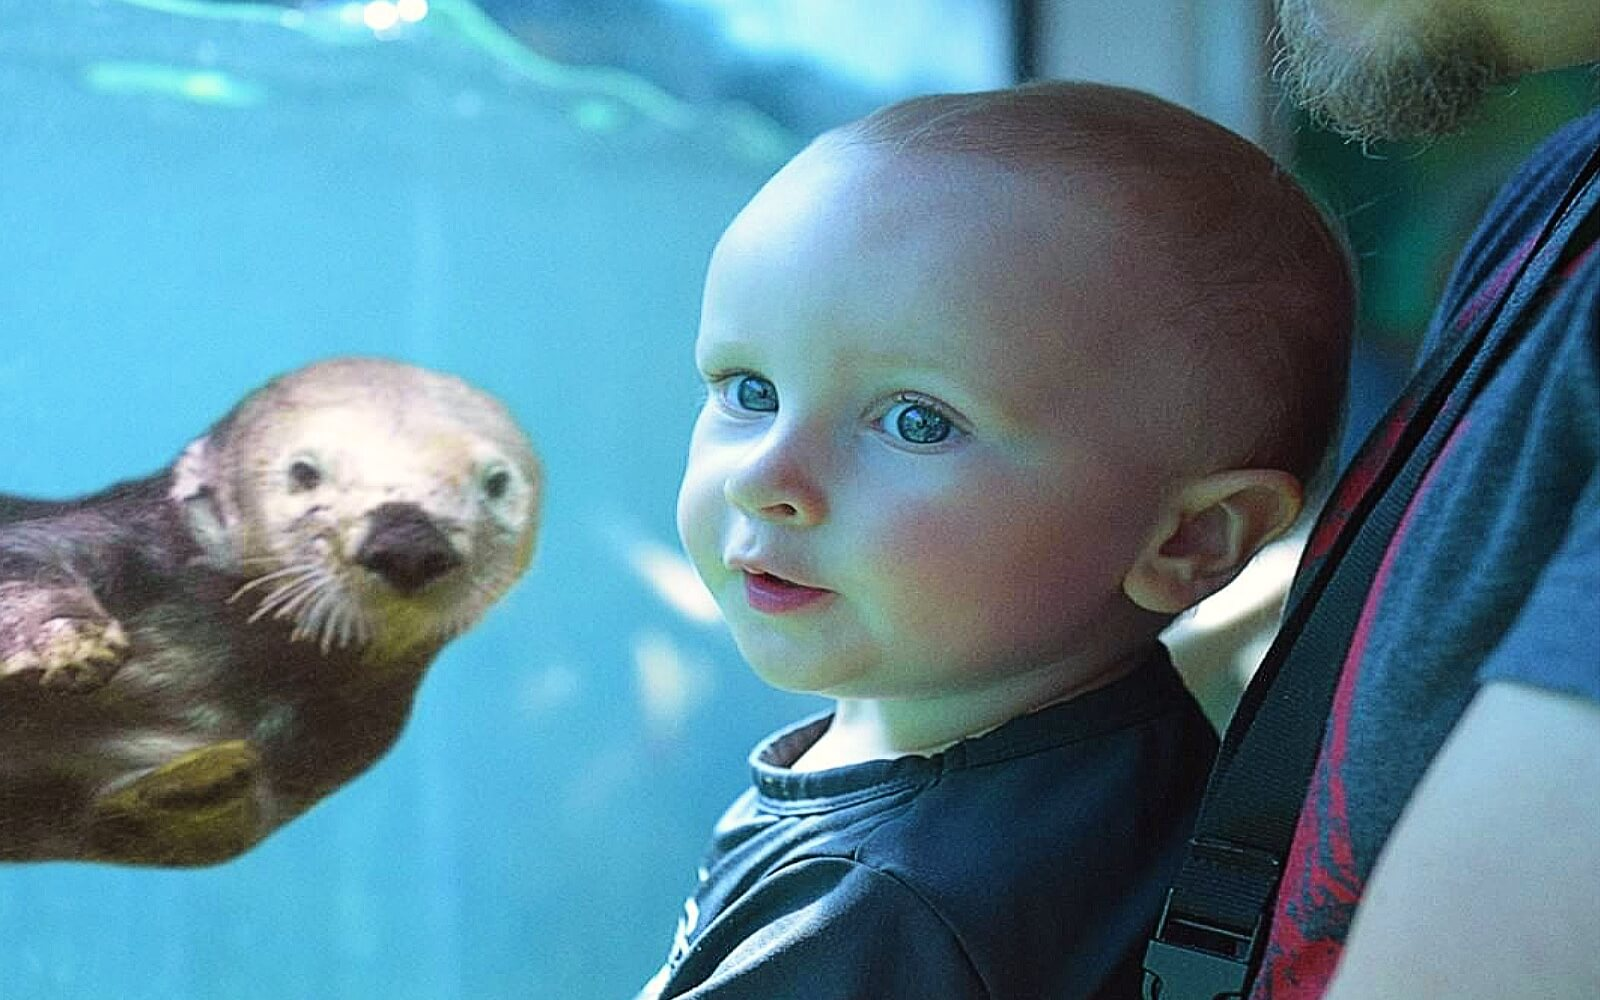 a child observes a Sea Otter